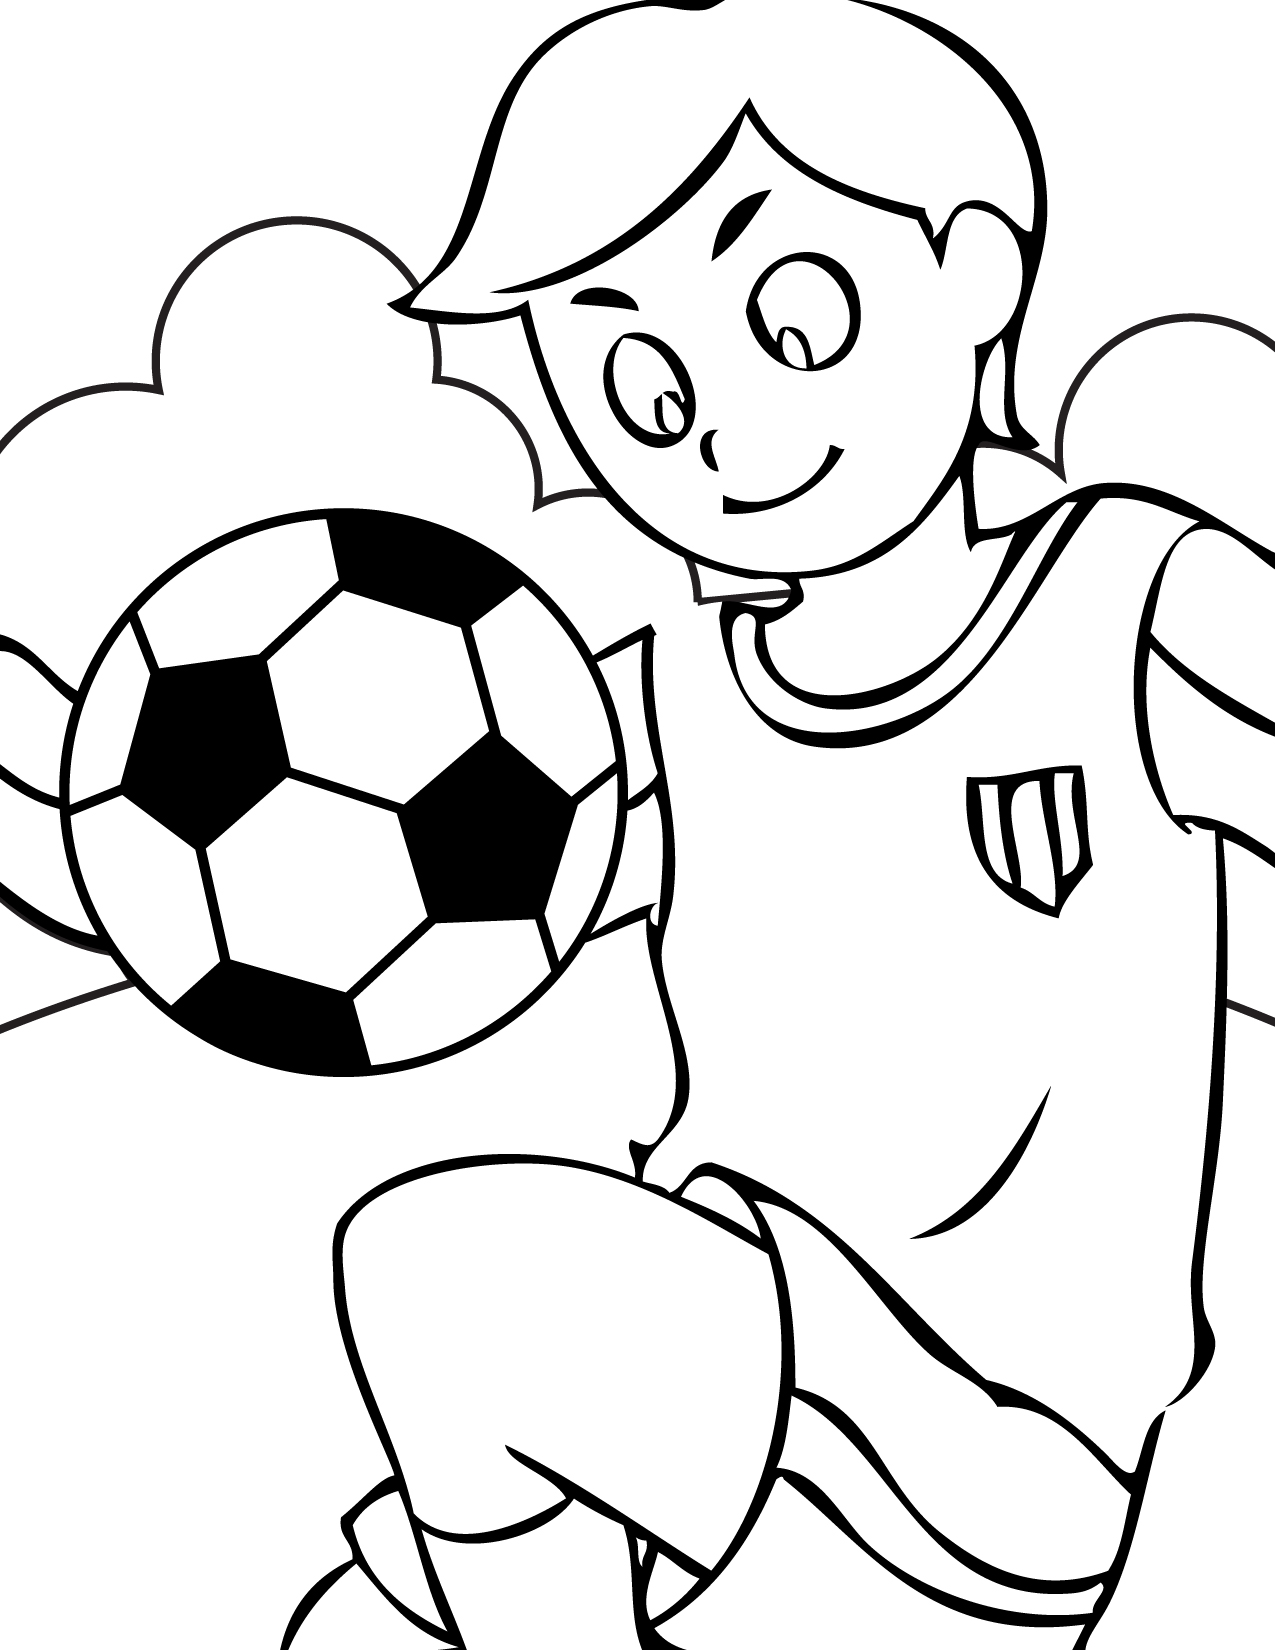 Free Printable Sports Coloring Pages For Kids Sports Coloring Pages For Boys Printable